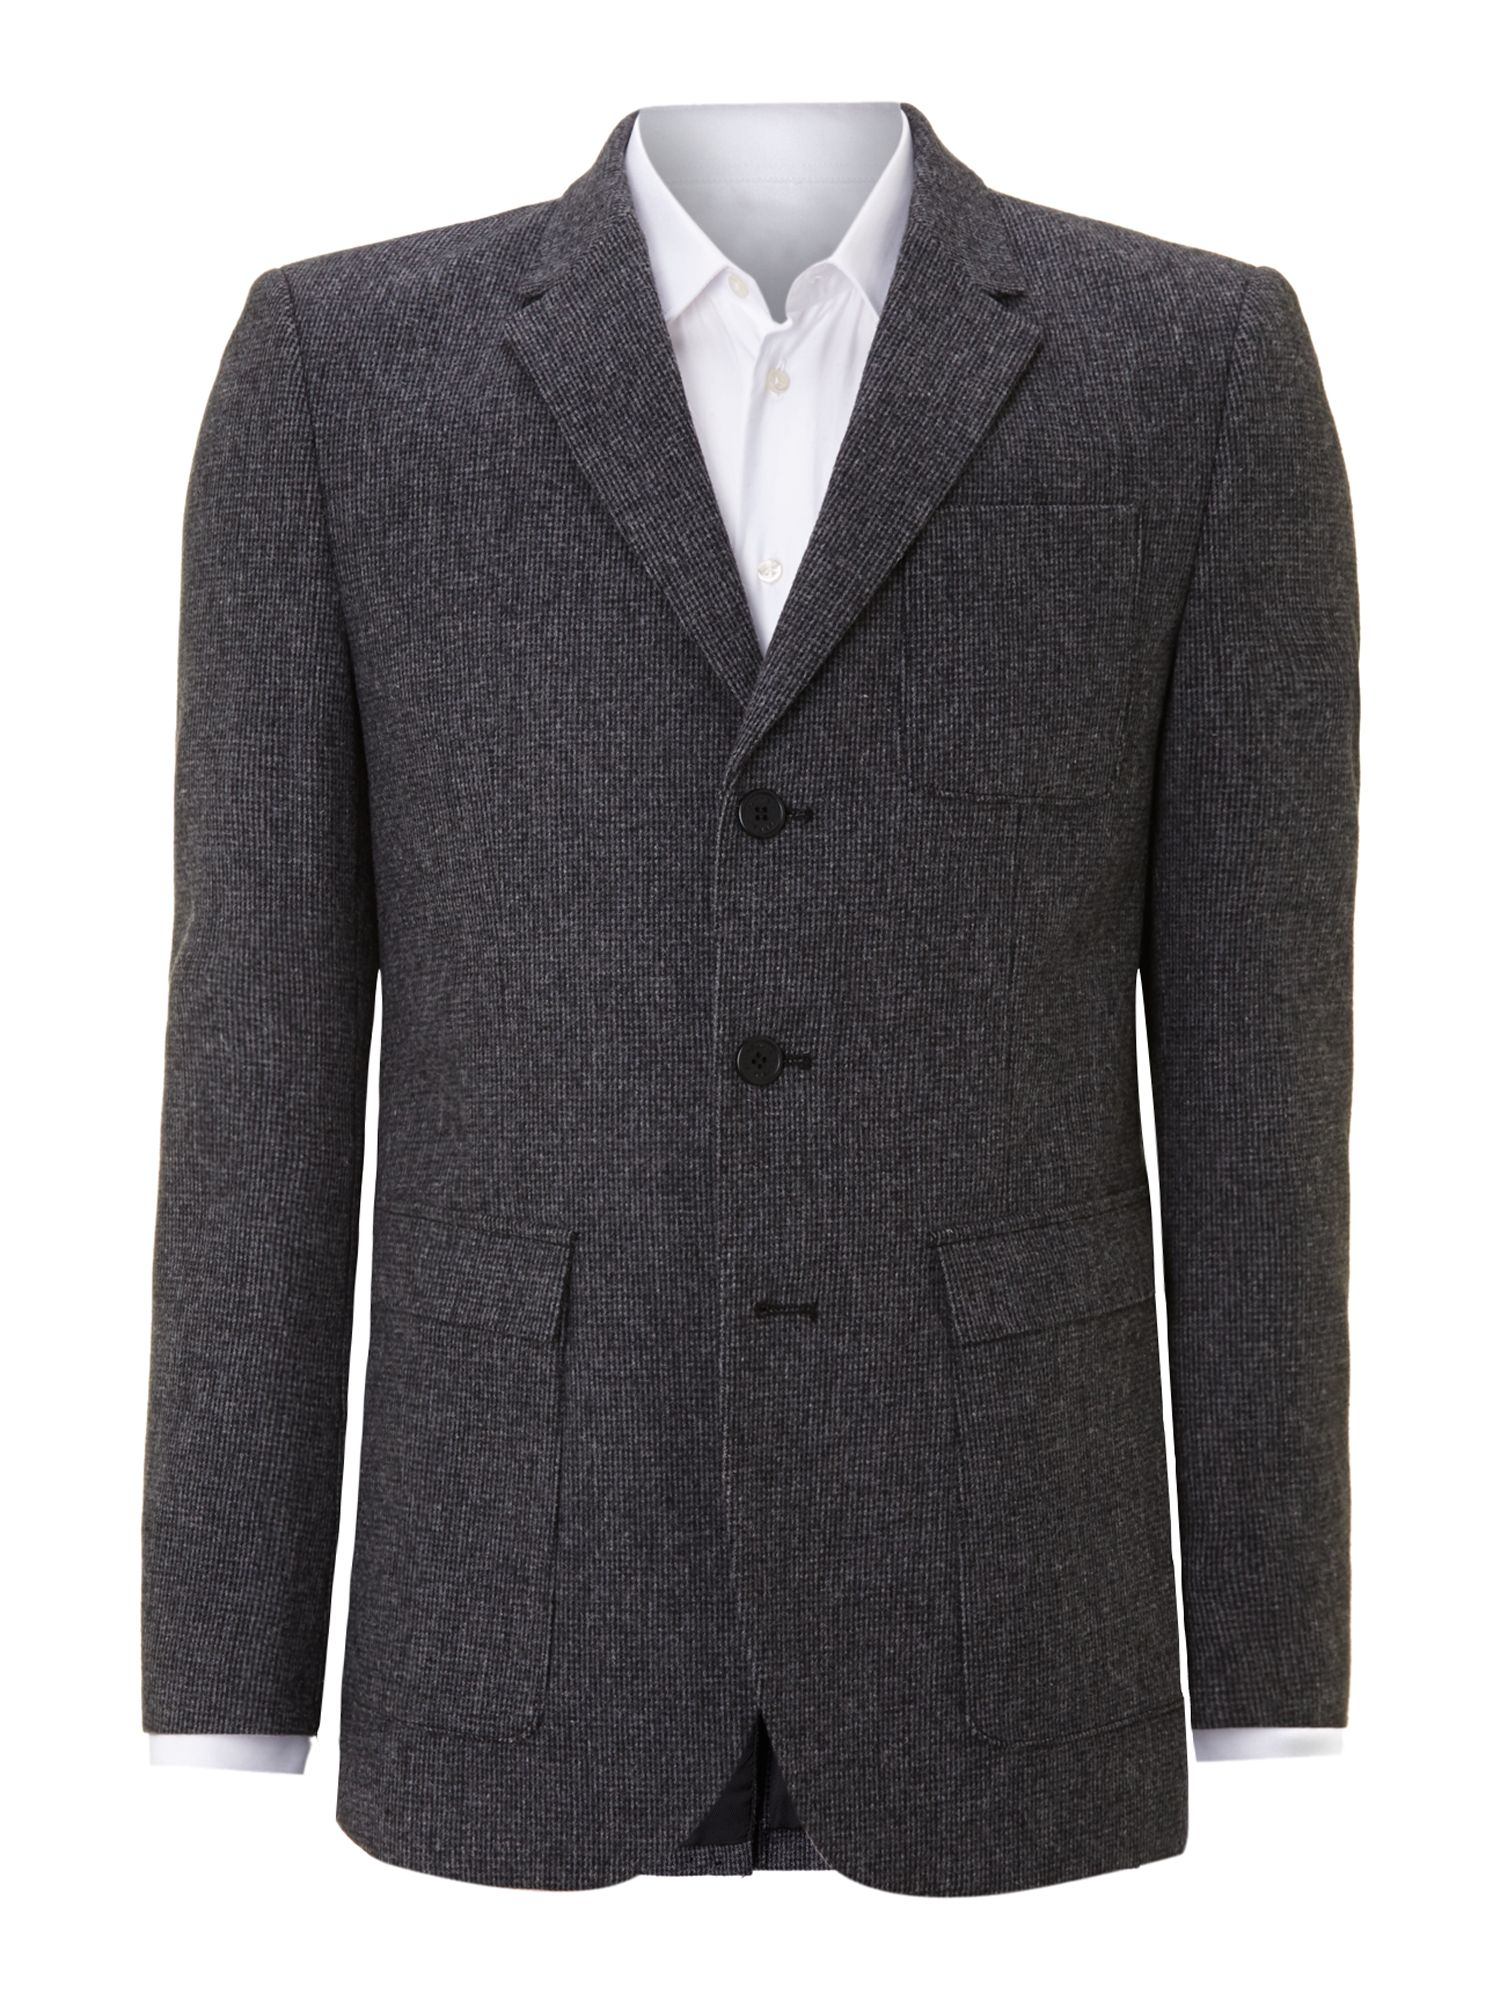 Norfolk dogtooth blazer